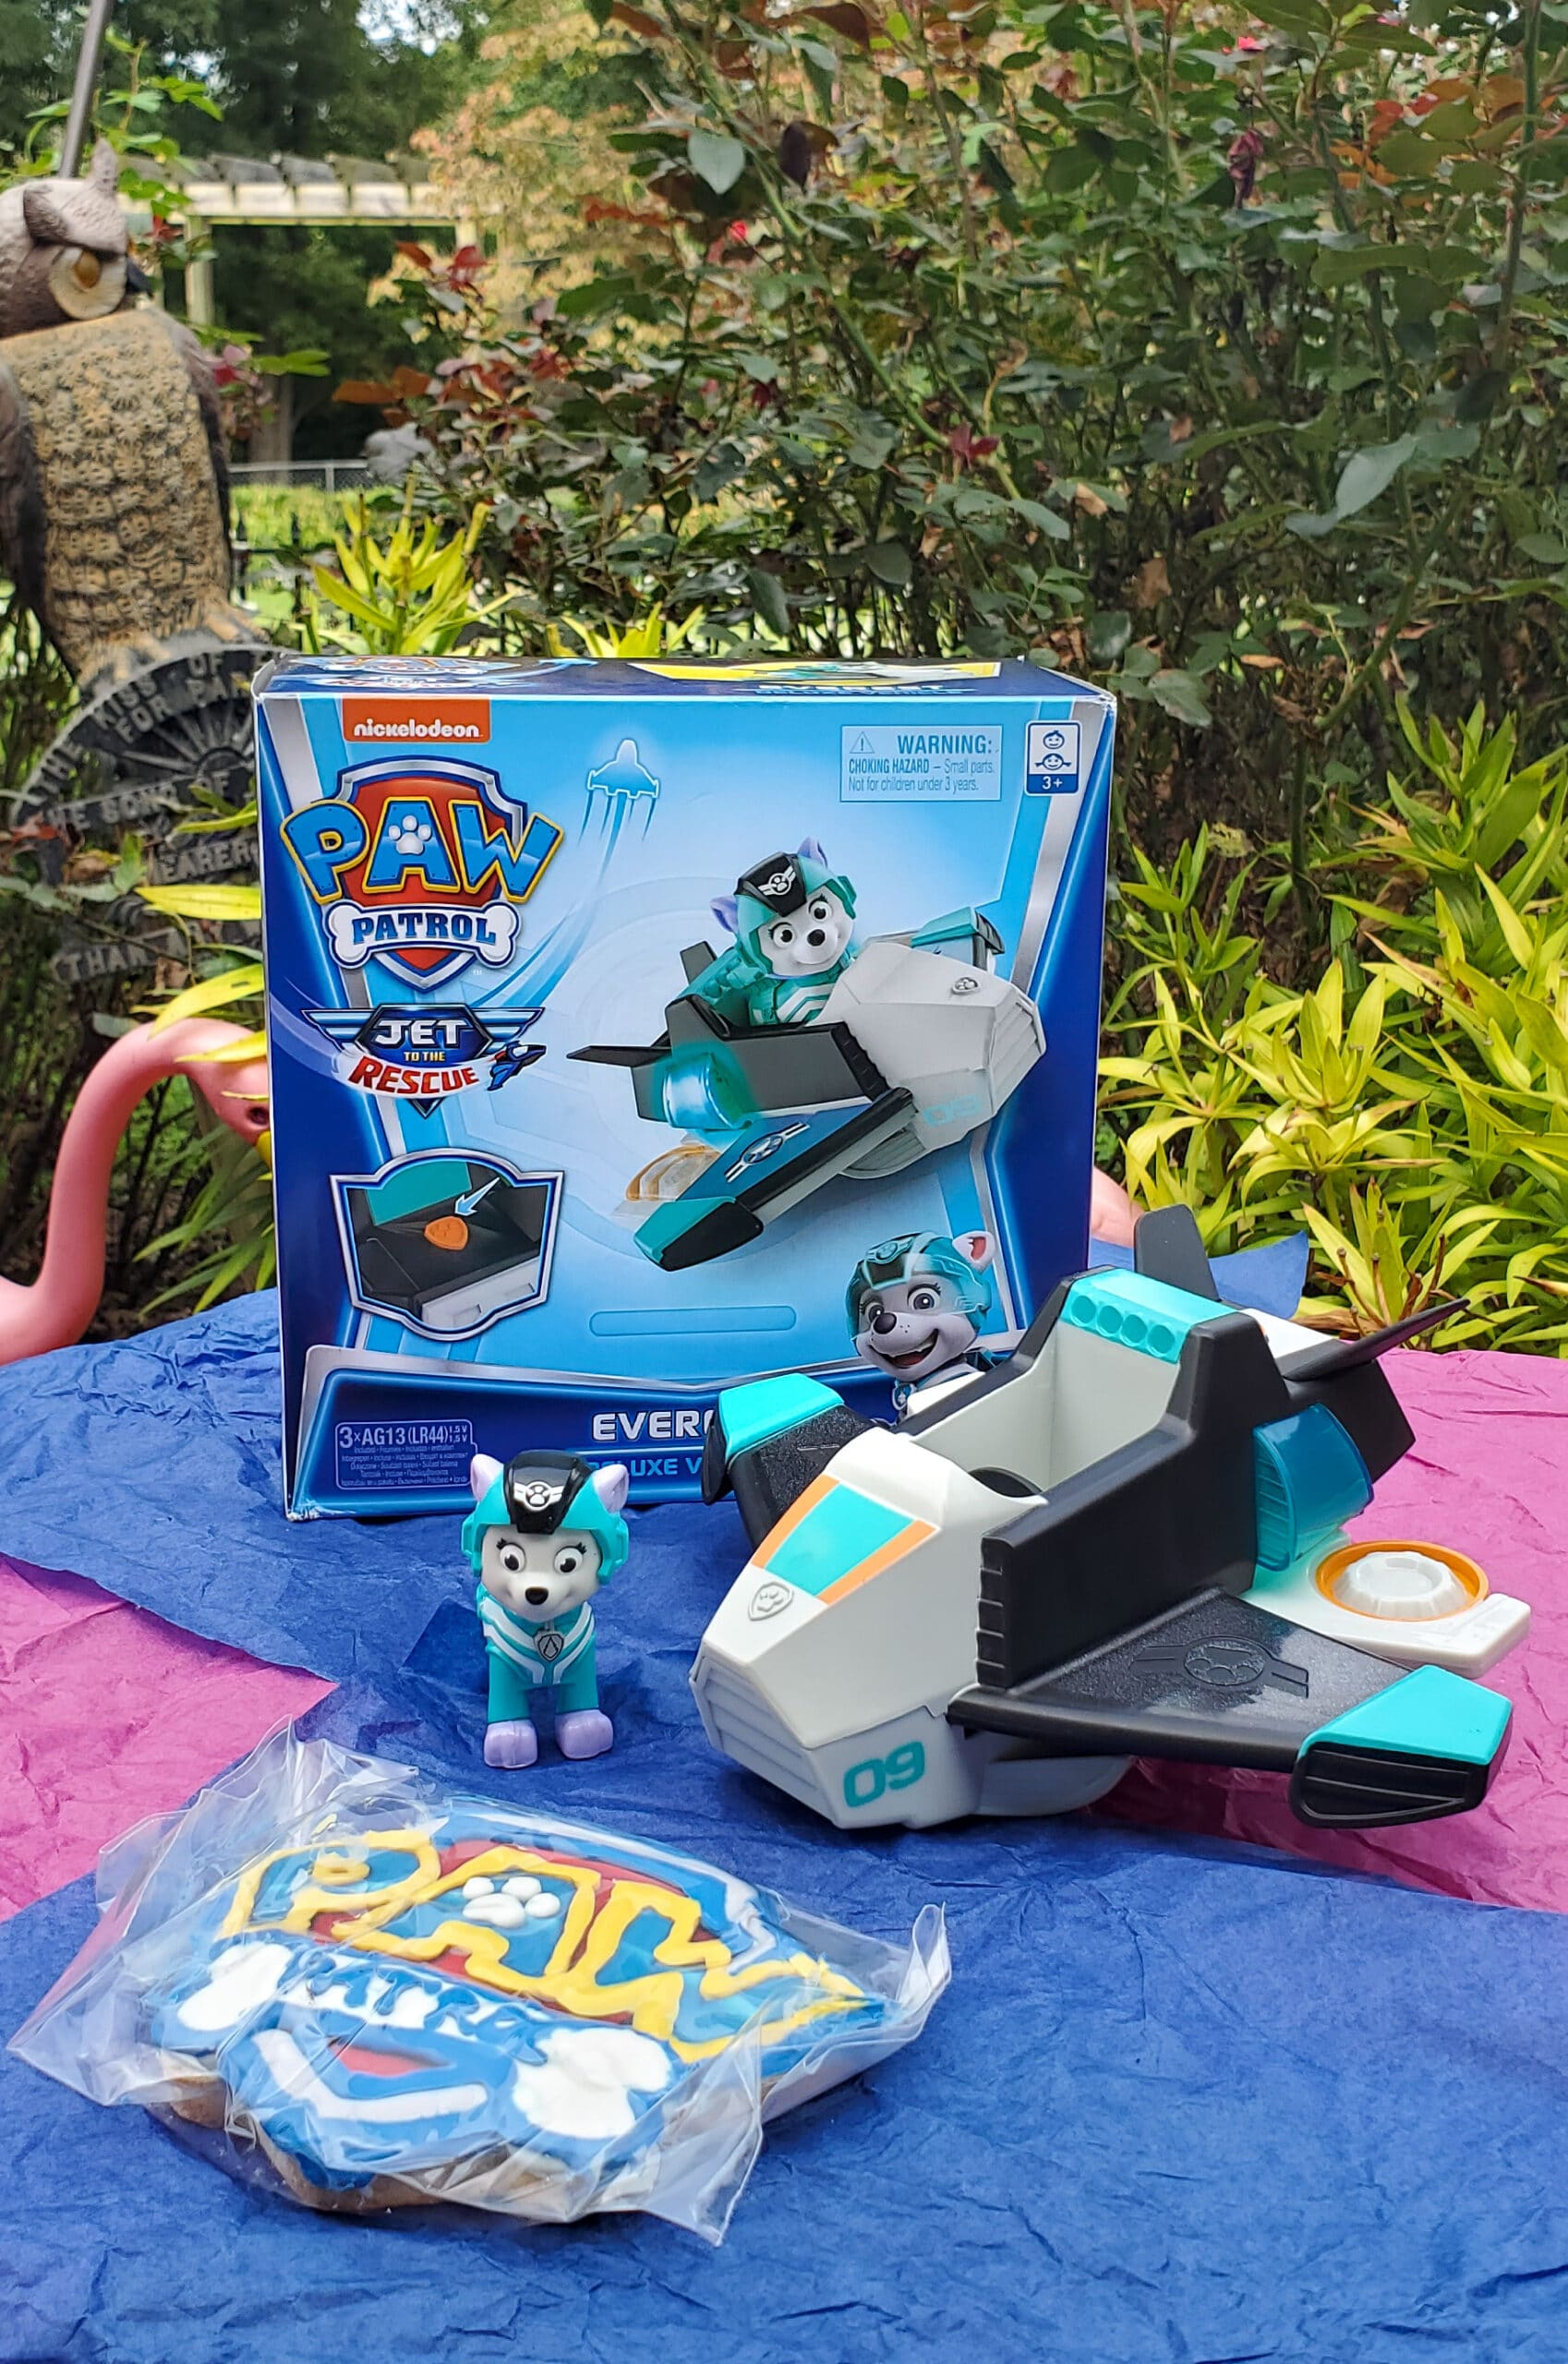 PAW Patrol: Jet to the Rescue Everest Deluxe Vehicle. Get ready for high-flying adventures with thePAW Patrolpups in the brand-new DVDPAW Patrol: Jet to the Rescue. In celebration of the release of this special feature, Nickelodeon sent us a surprise box full of PAW Patrol goodies! View all of the fun new PAW Patrol: Jet to the Rescue themed toys available on my blog.